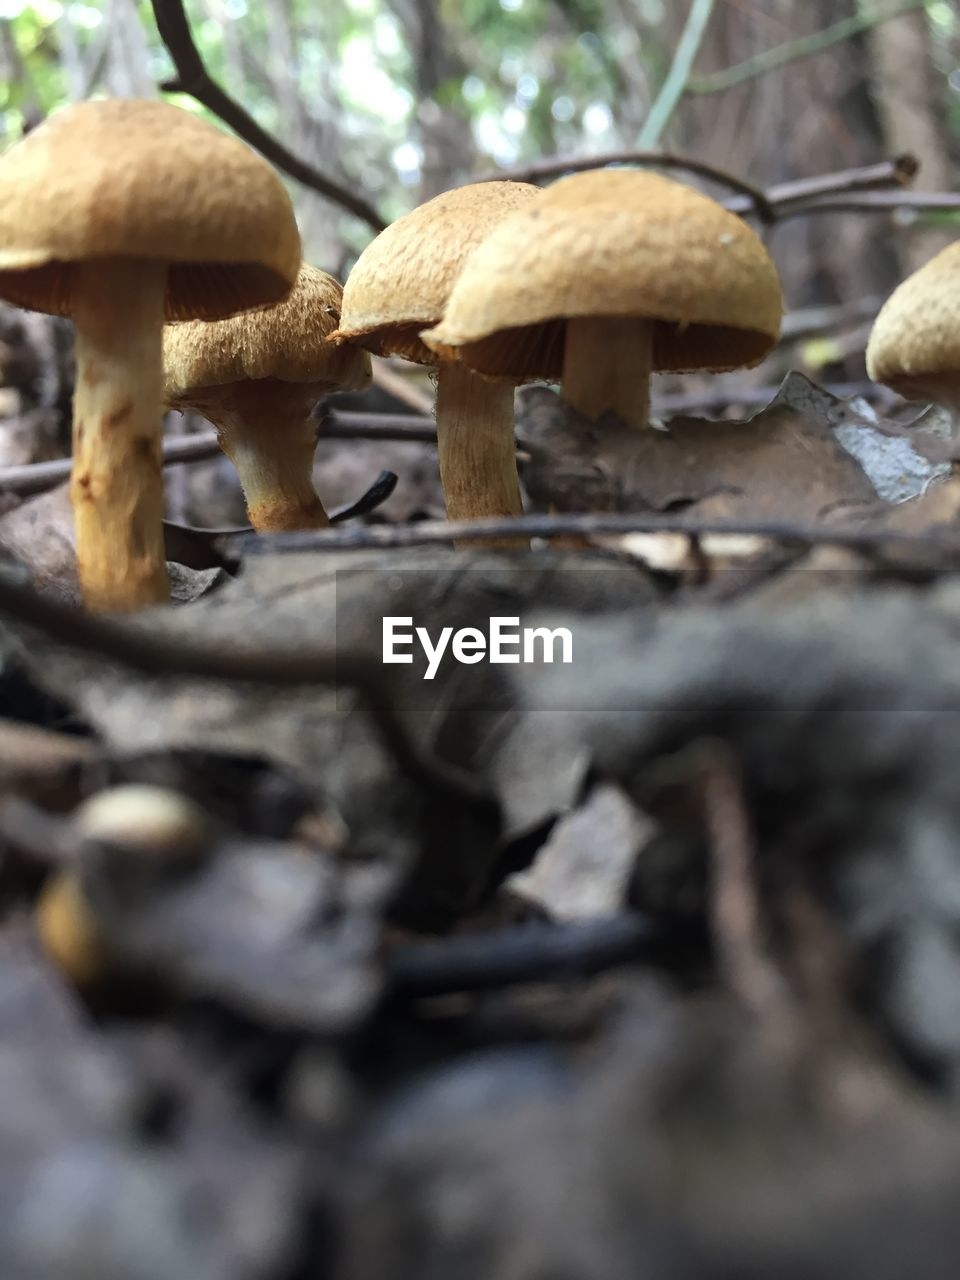 fungus, mushroom, food, selective focus, toadstool, vegetable, growth, close-up, plant, land, no people, food and drink, nature, day, surface level, edible mushroom, tree, forest, field, beauty in nature, outdoors